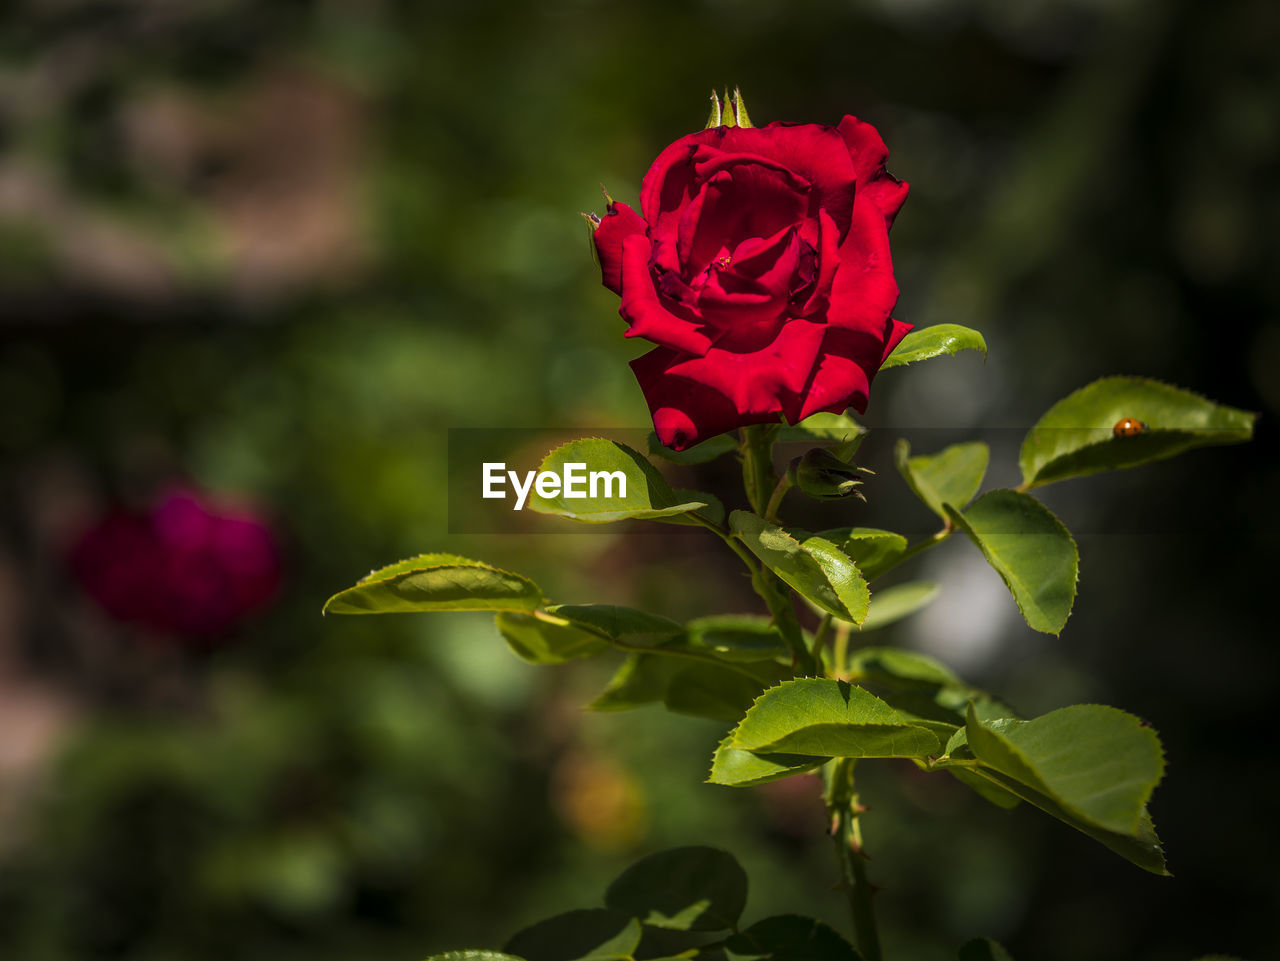 flower, flowering plant, plant, beauty in nature, vulnerability, fragility, freshness, petal, growth, rose, close-up, rose - flower, leaf, plant part, inflorescence, focus on foreground, flower head, nature, red, no people, sepal